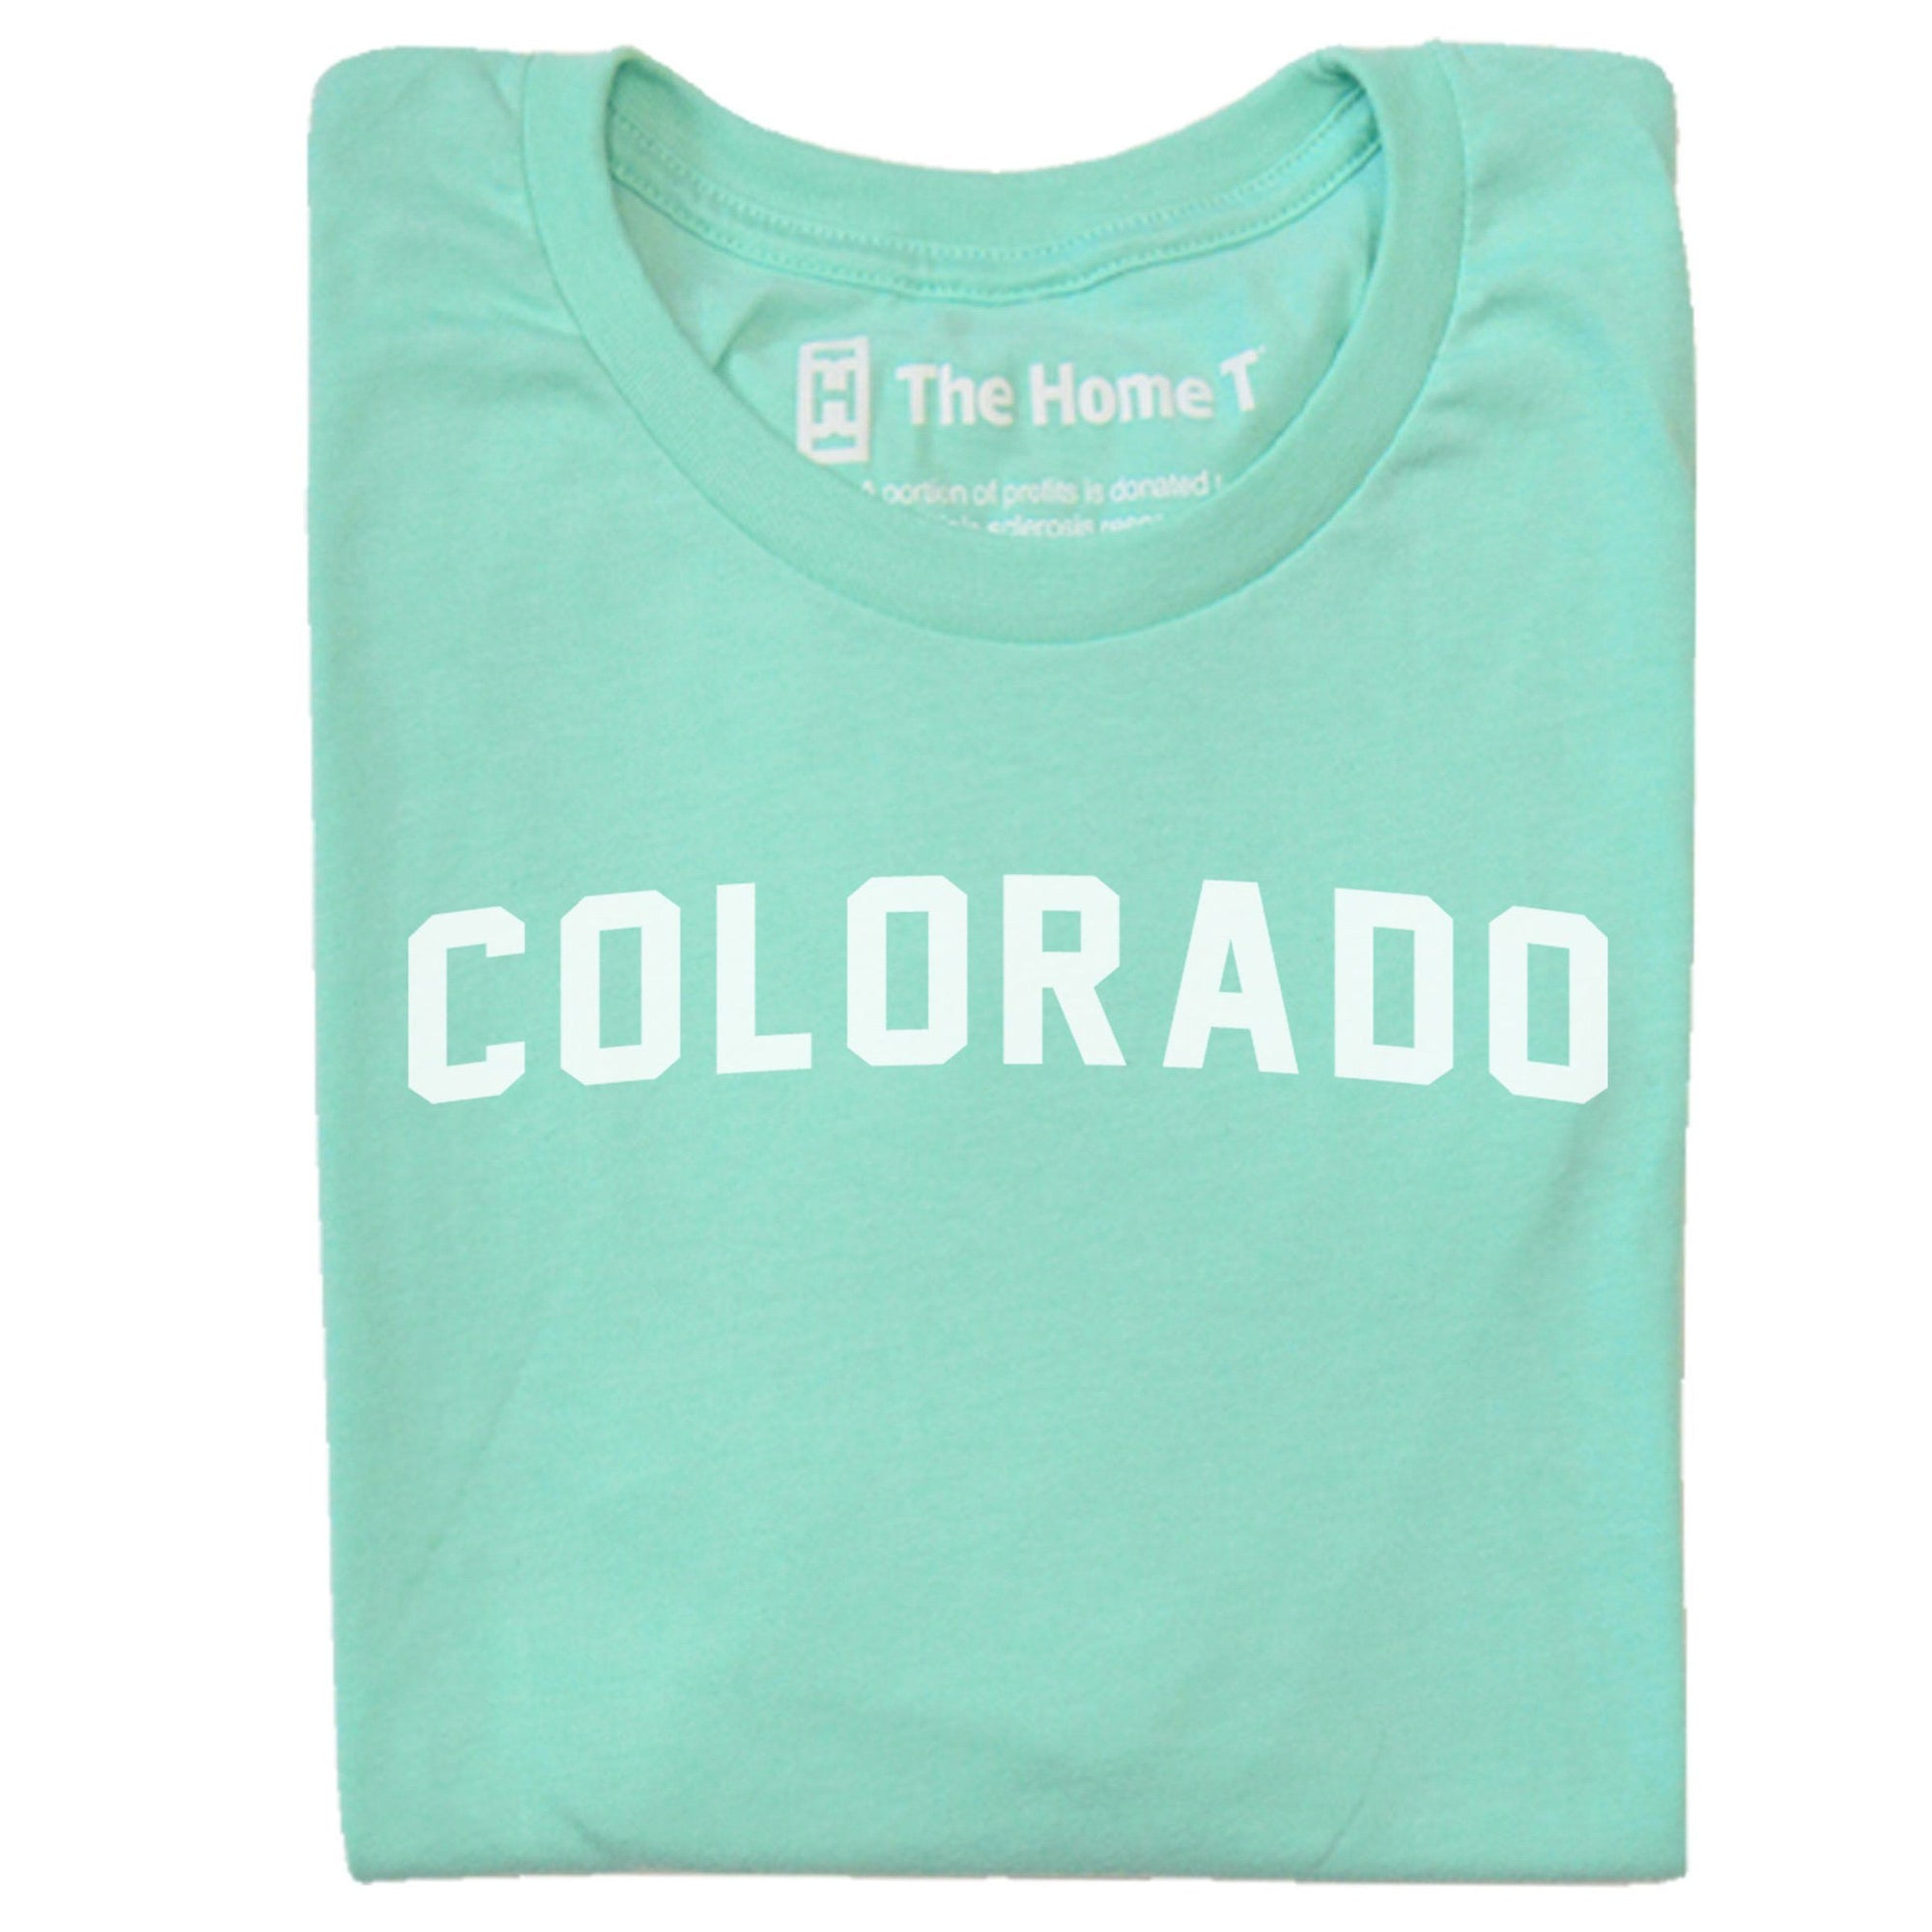 Colorado Arched The Home T XS Mint